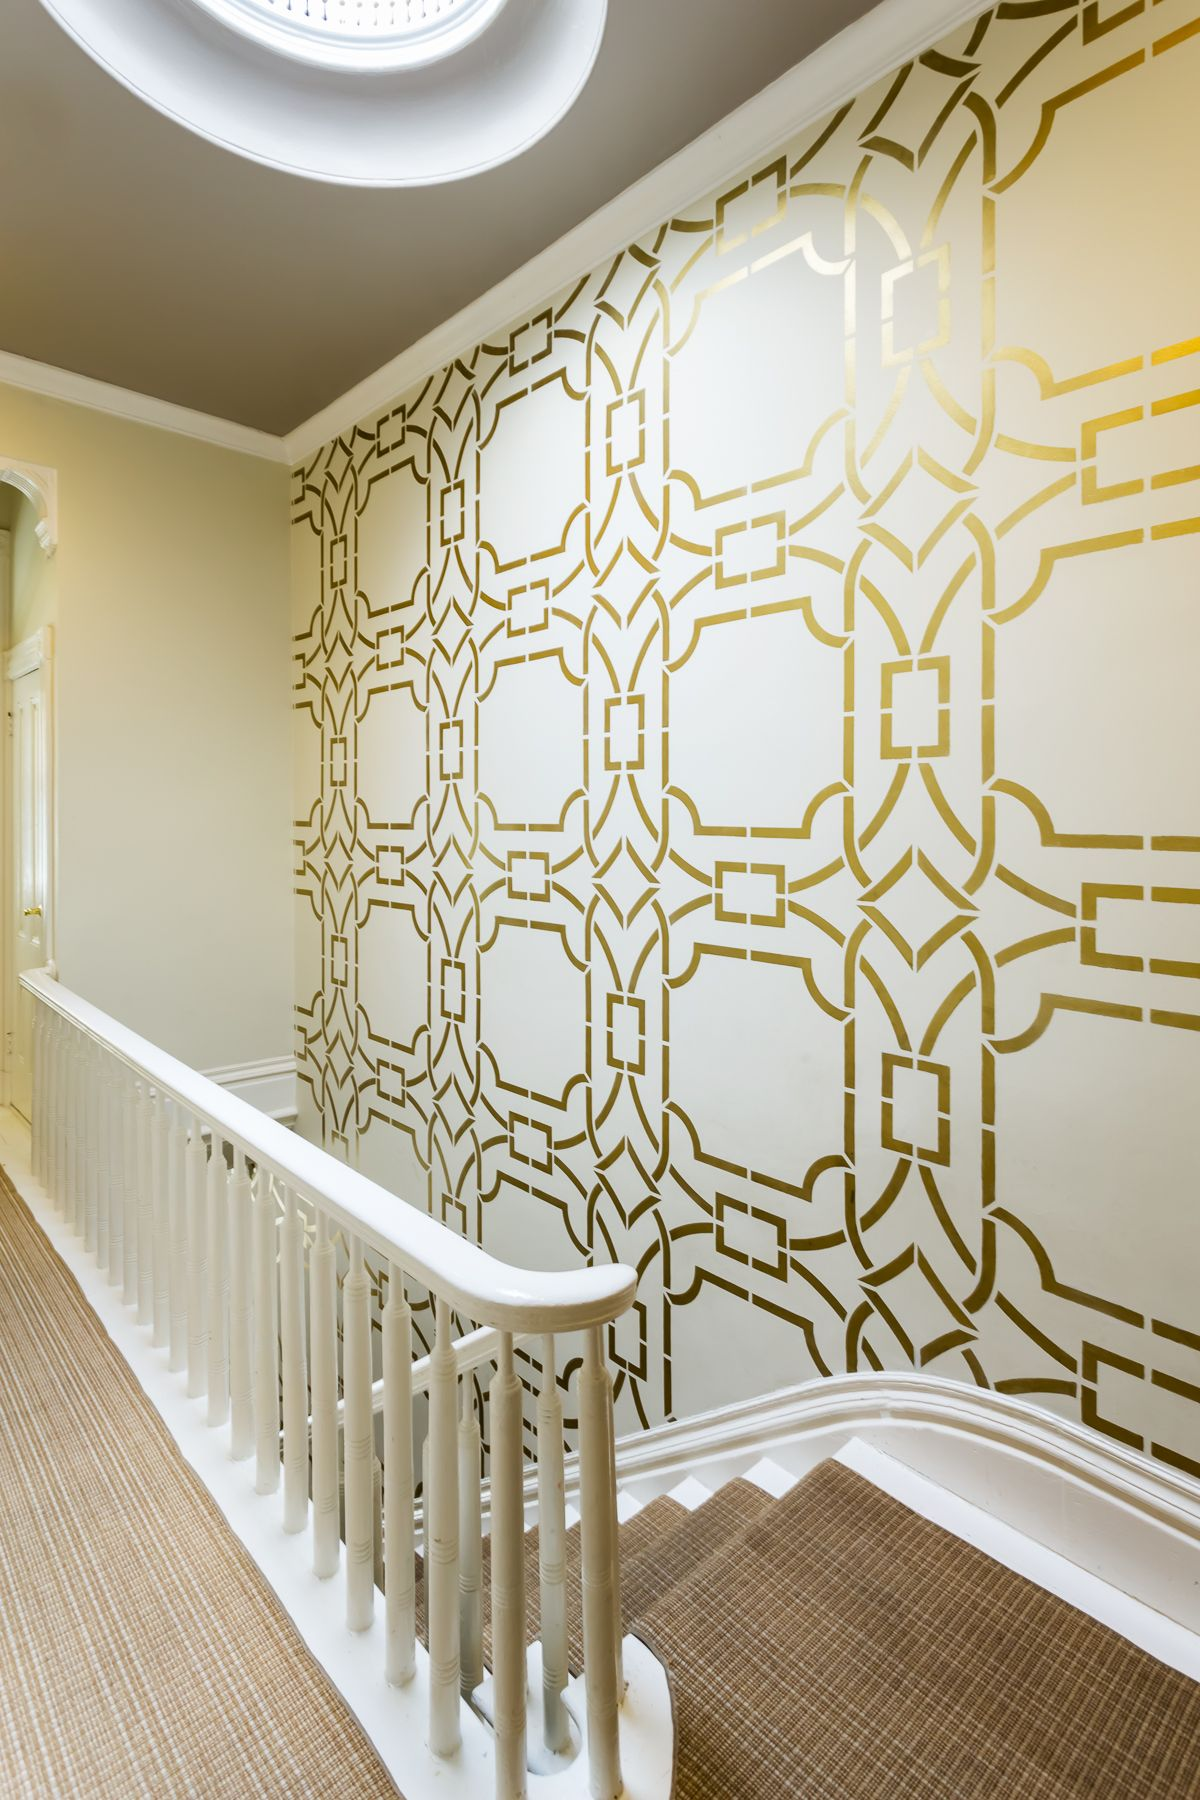 Ordinaire Our Contempo Trellis Wall Stencil Is Shining Bright In This Stairwell. What  A Great Look! Interior Design By @Kress Jack At Home,